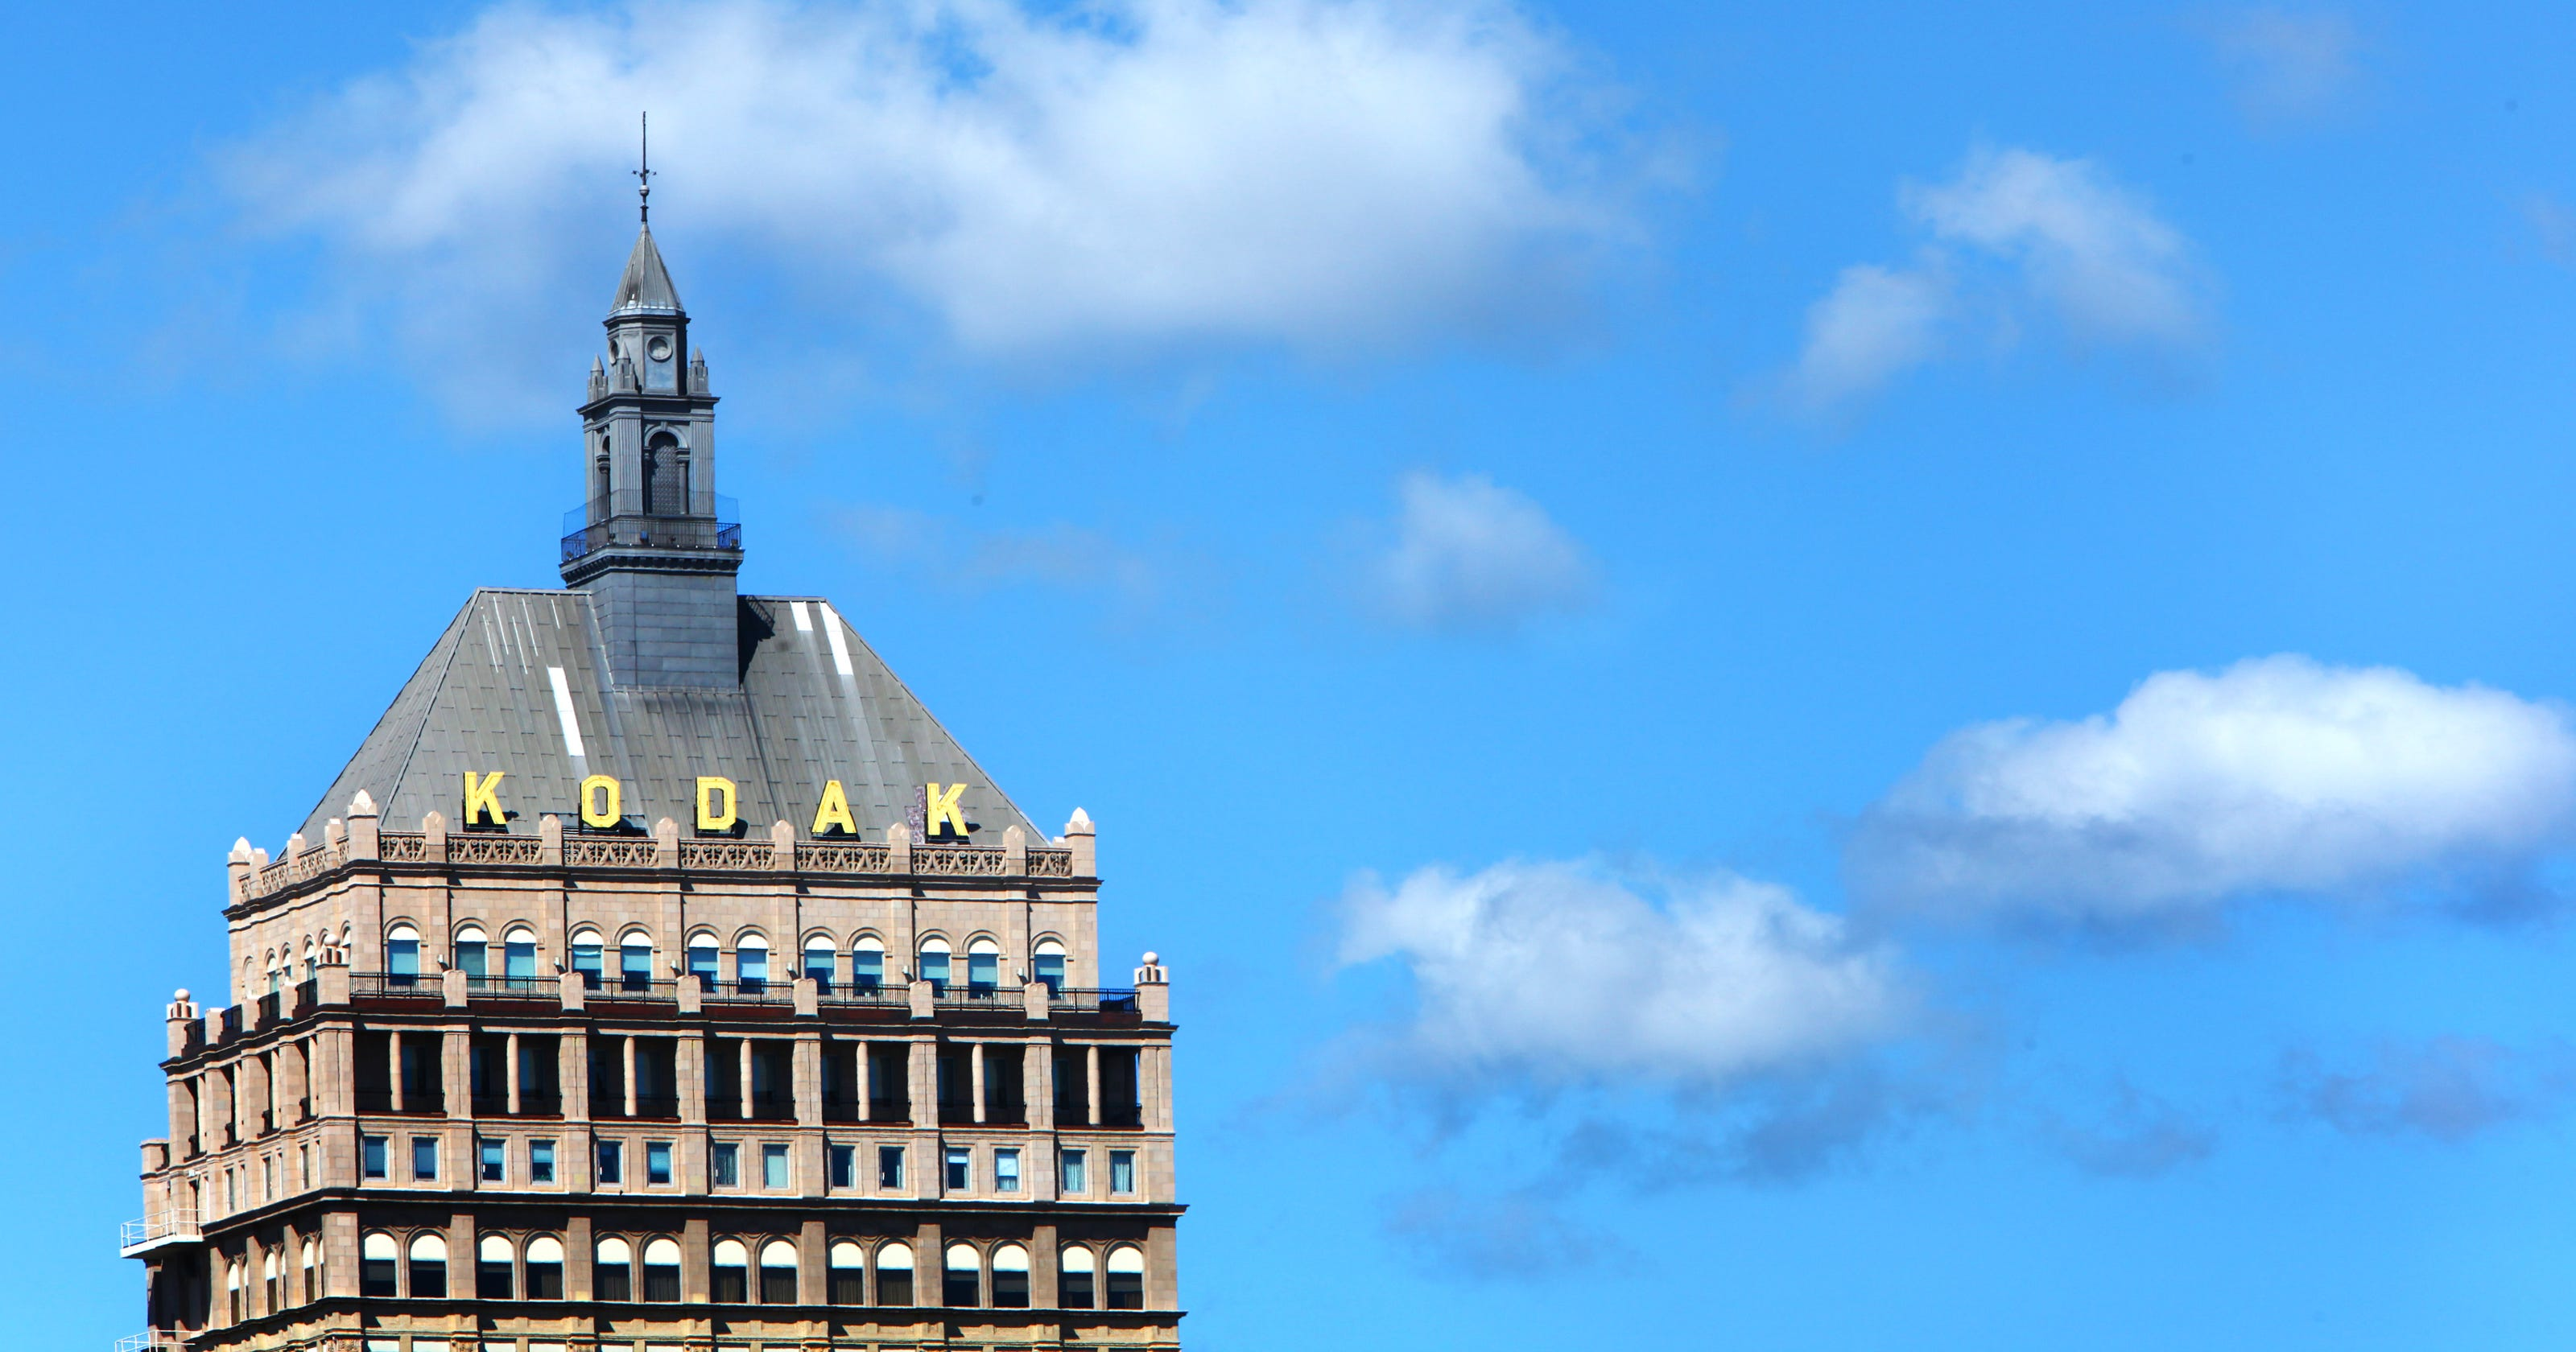 Kodak plans to shed 325 jobs and sell flexographic packaging division